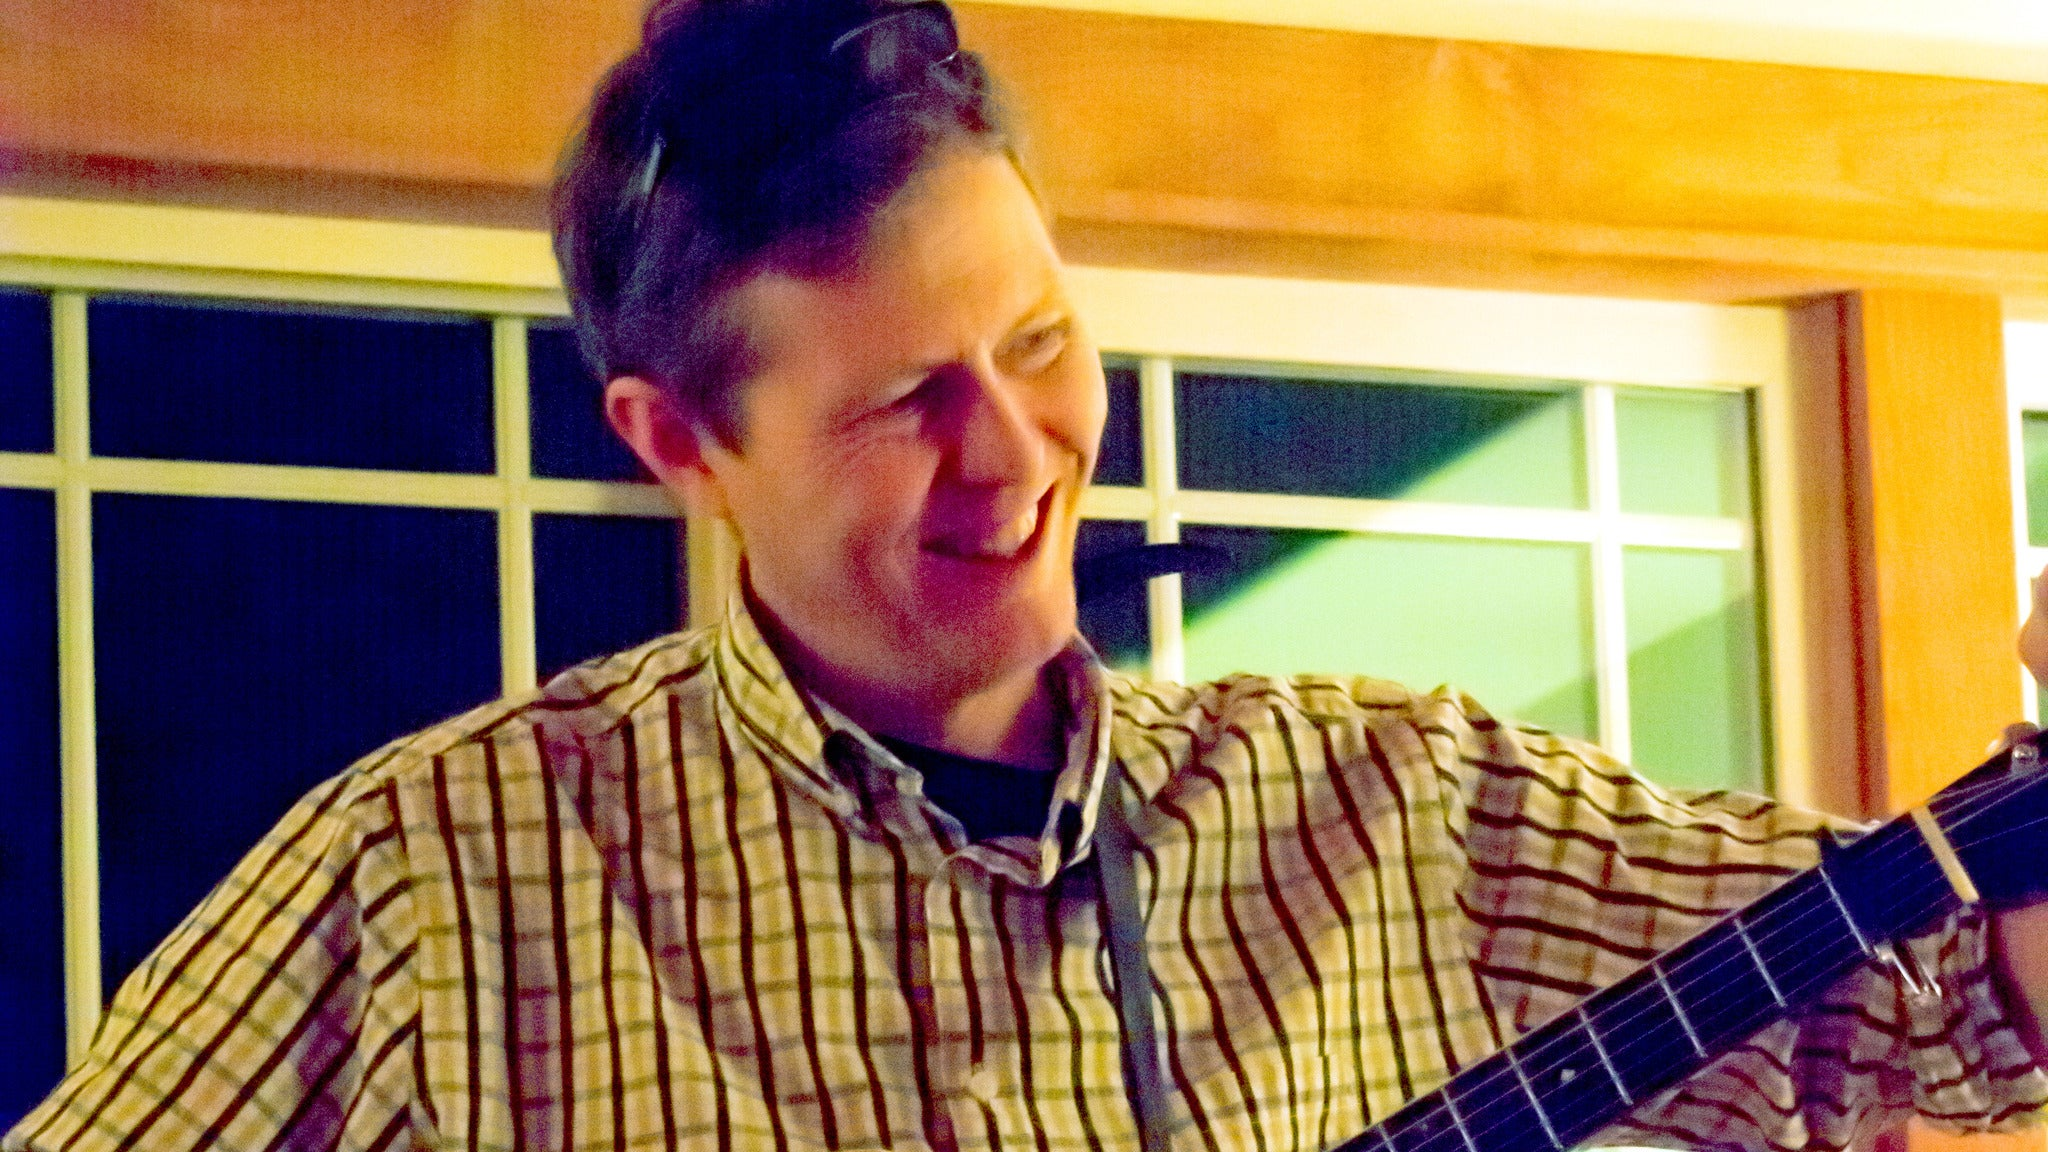 Robbie Fulks with Ryan Joseph Anderson at SPACE